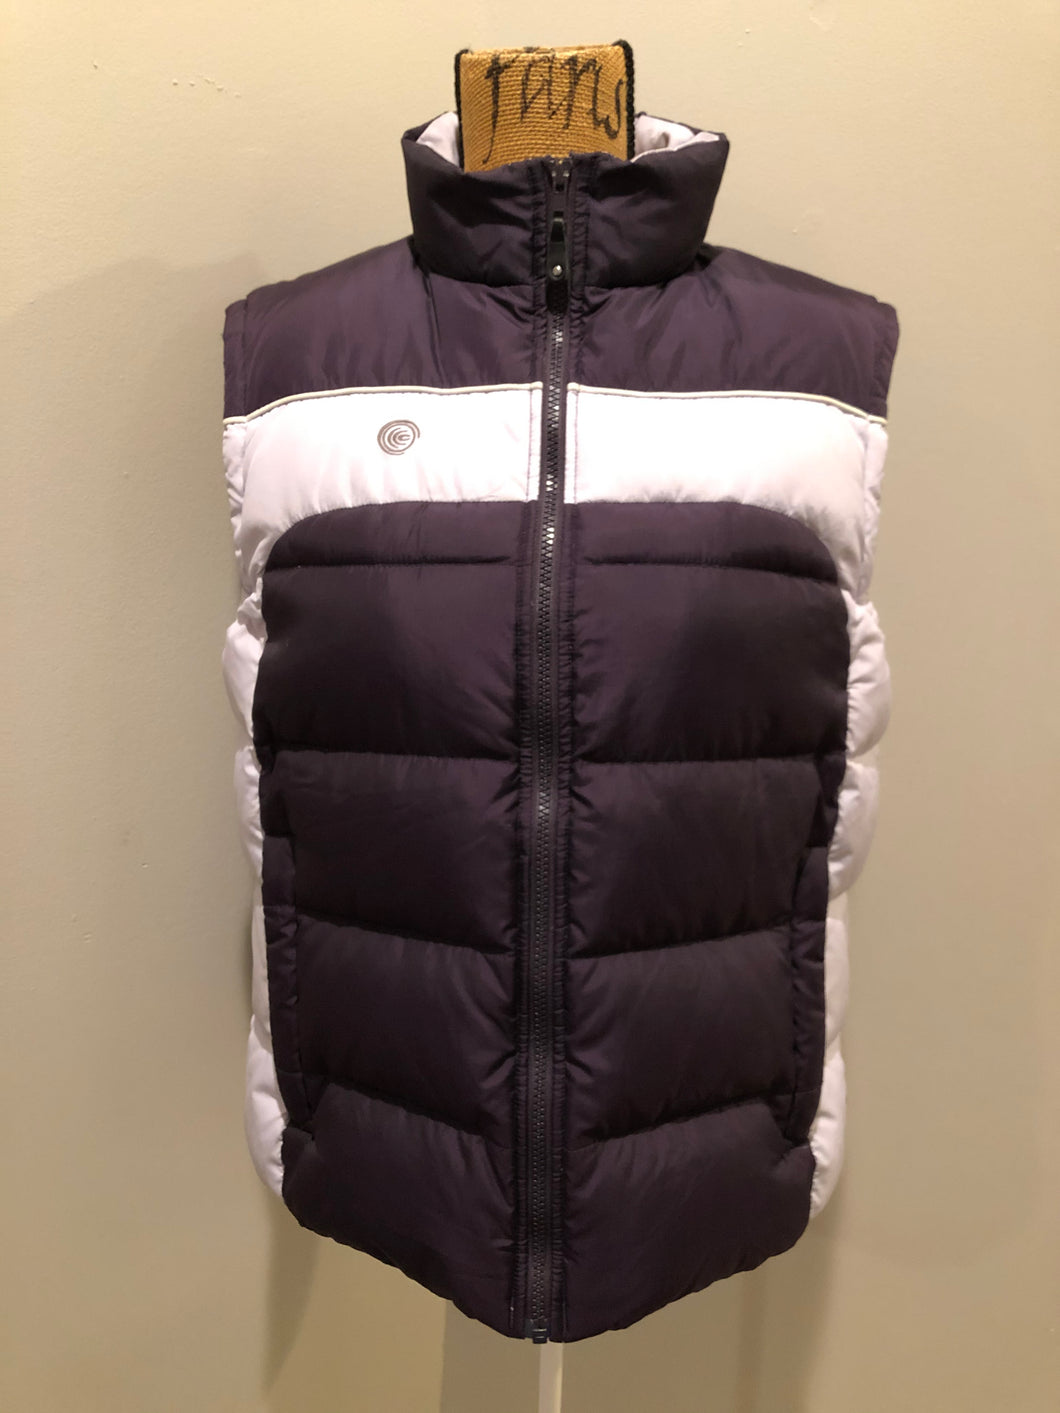 Columbia dark and light purple down filled puffer vest with zipper closure, vertical zip pockets and inside pocket. Size large.